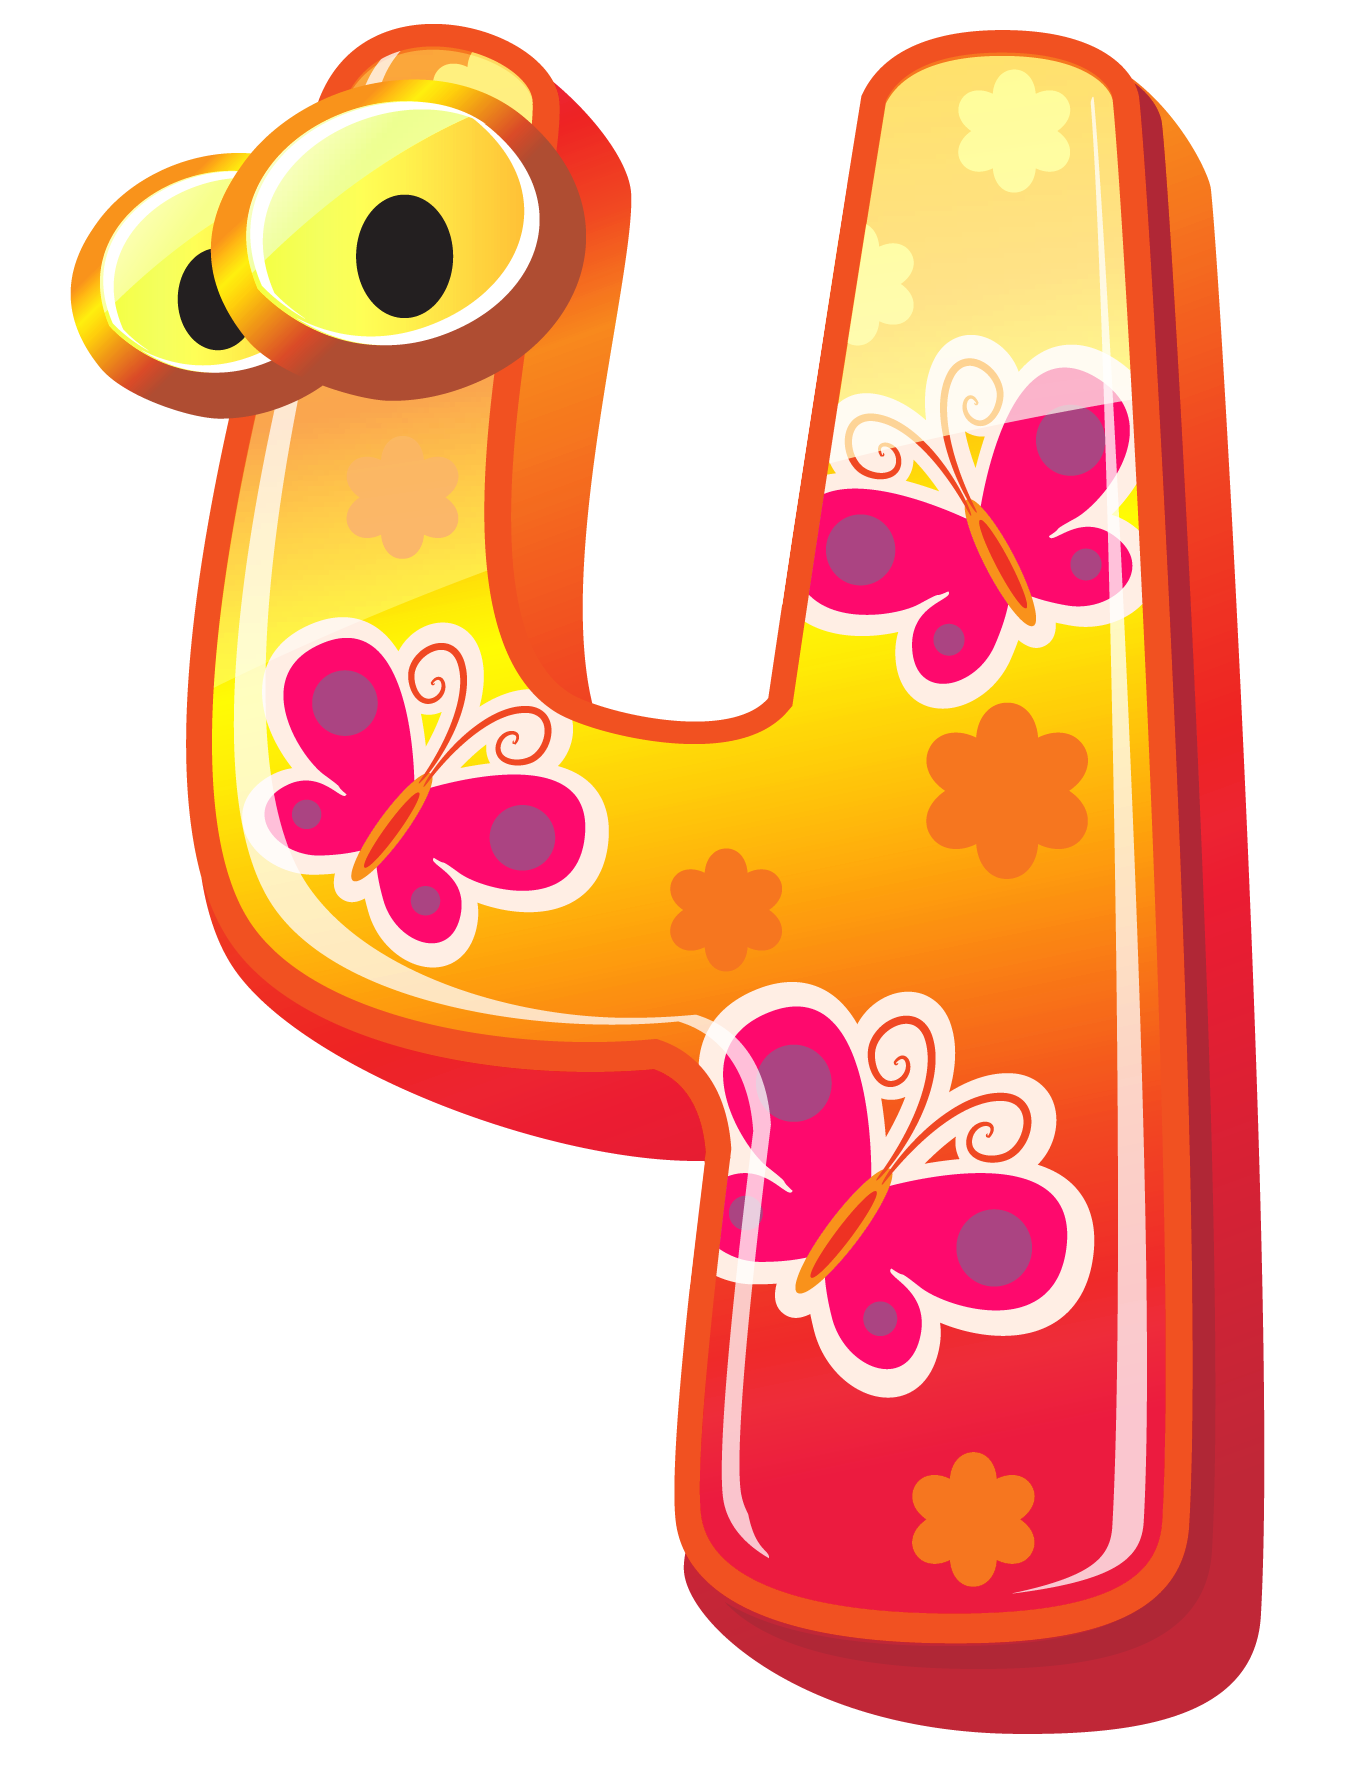 image royalty free library Cute four png image. Number clipart